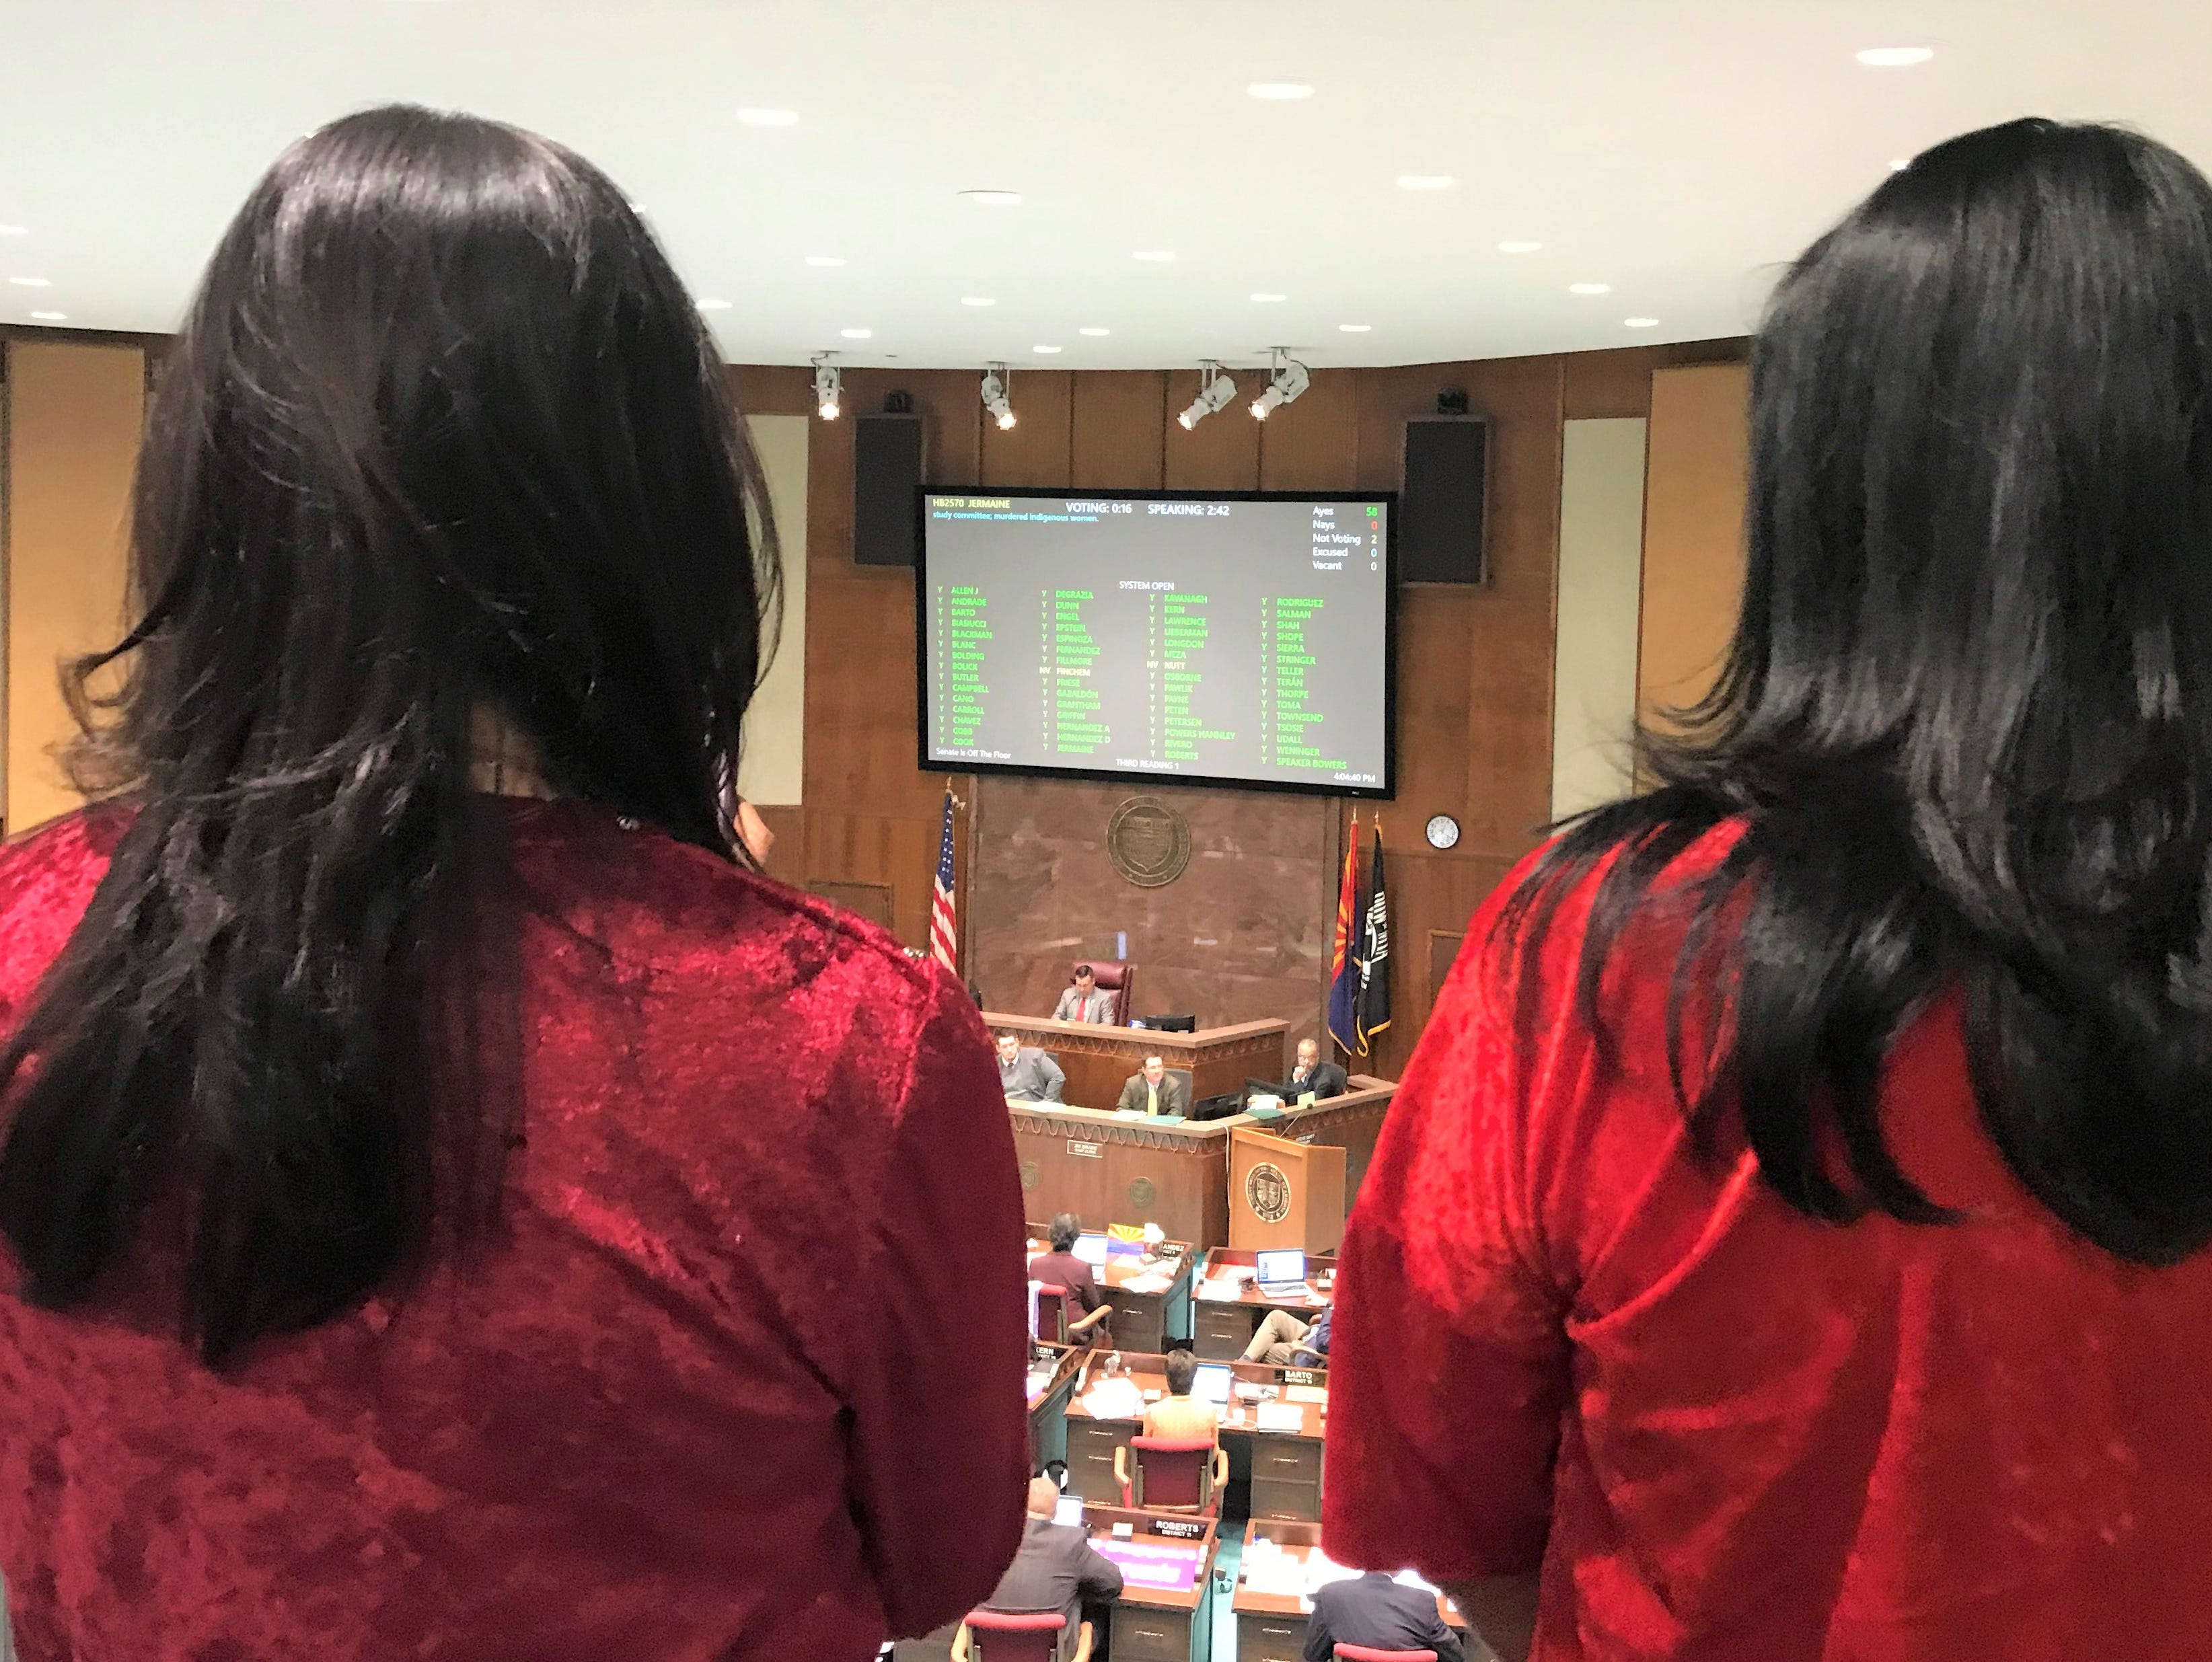 Navajo Nation First Lady Phefelia Nez (left) and Second Lady Dottie Lizer watch the votes come in for HB2570, a bill to create a study committee dedicated to missing and murdered indigenous women and girls. The bill passed 60-0 and is headed to the senate.